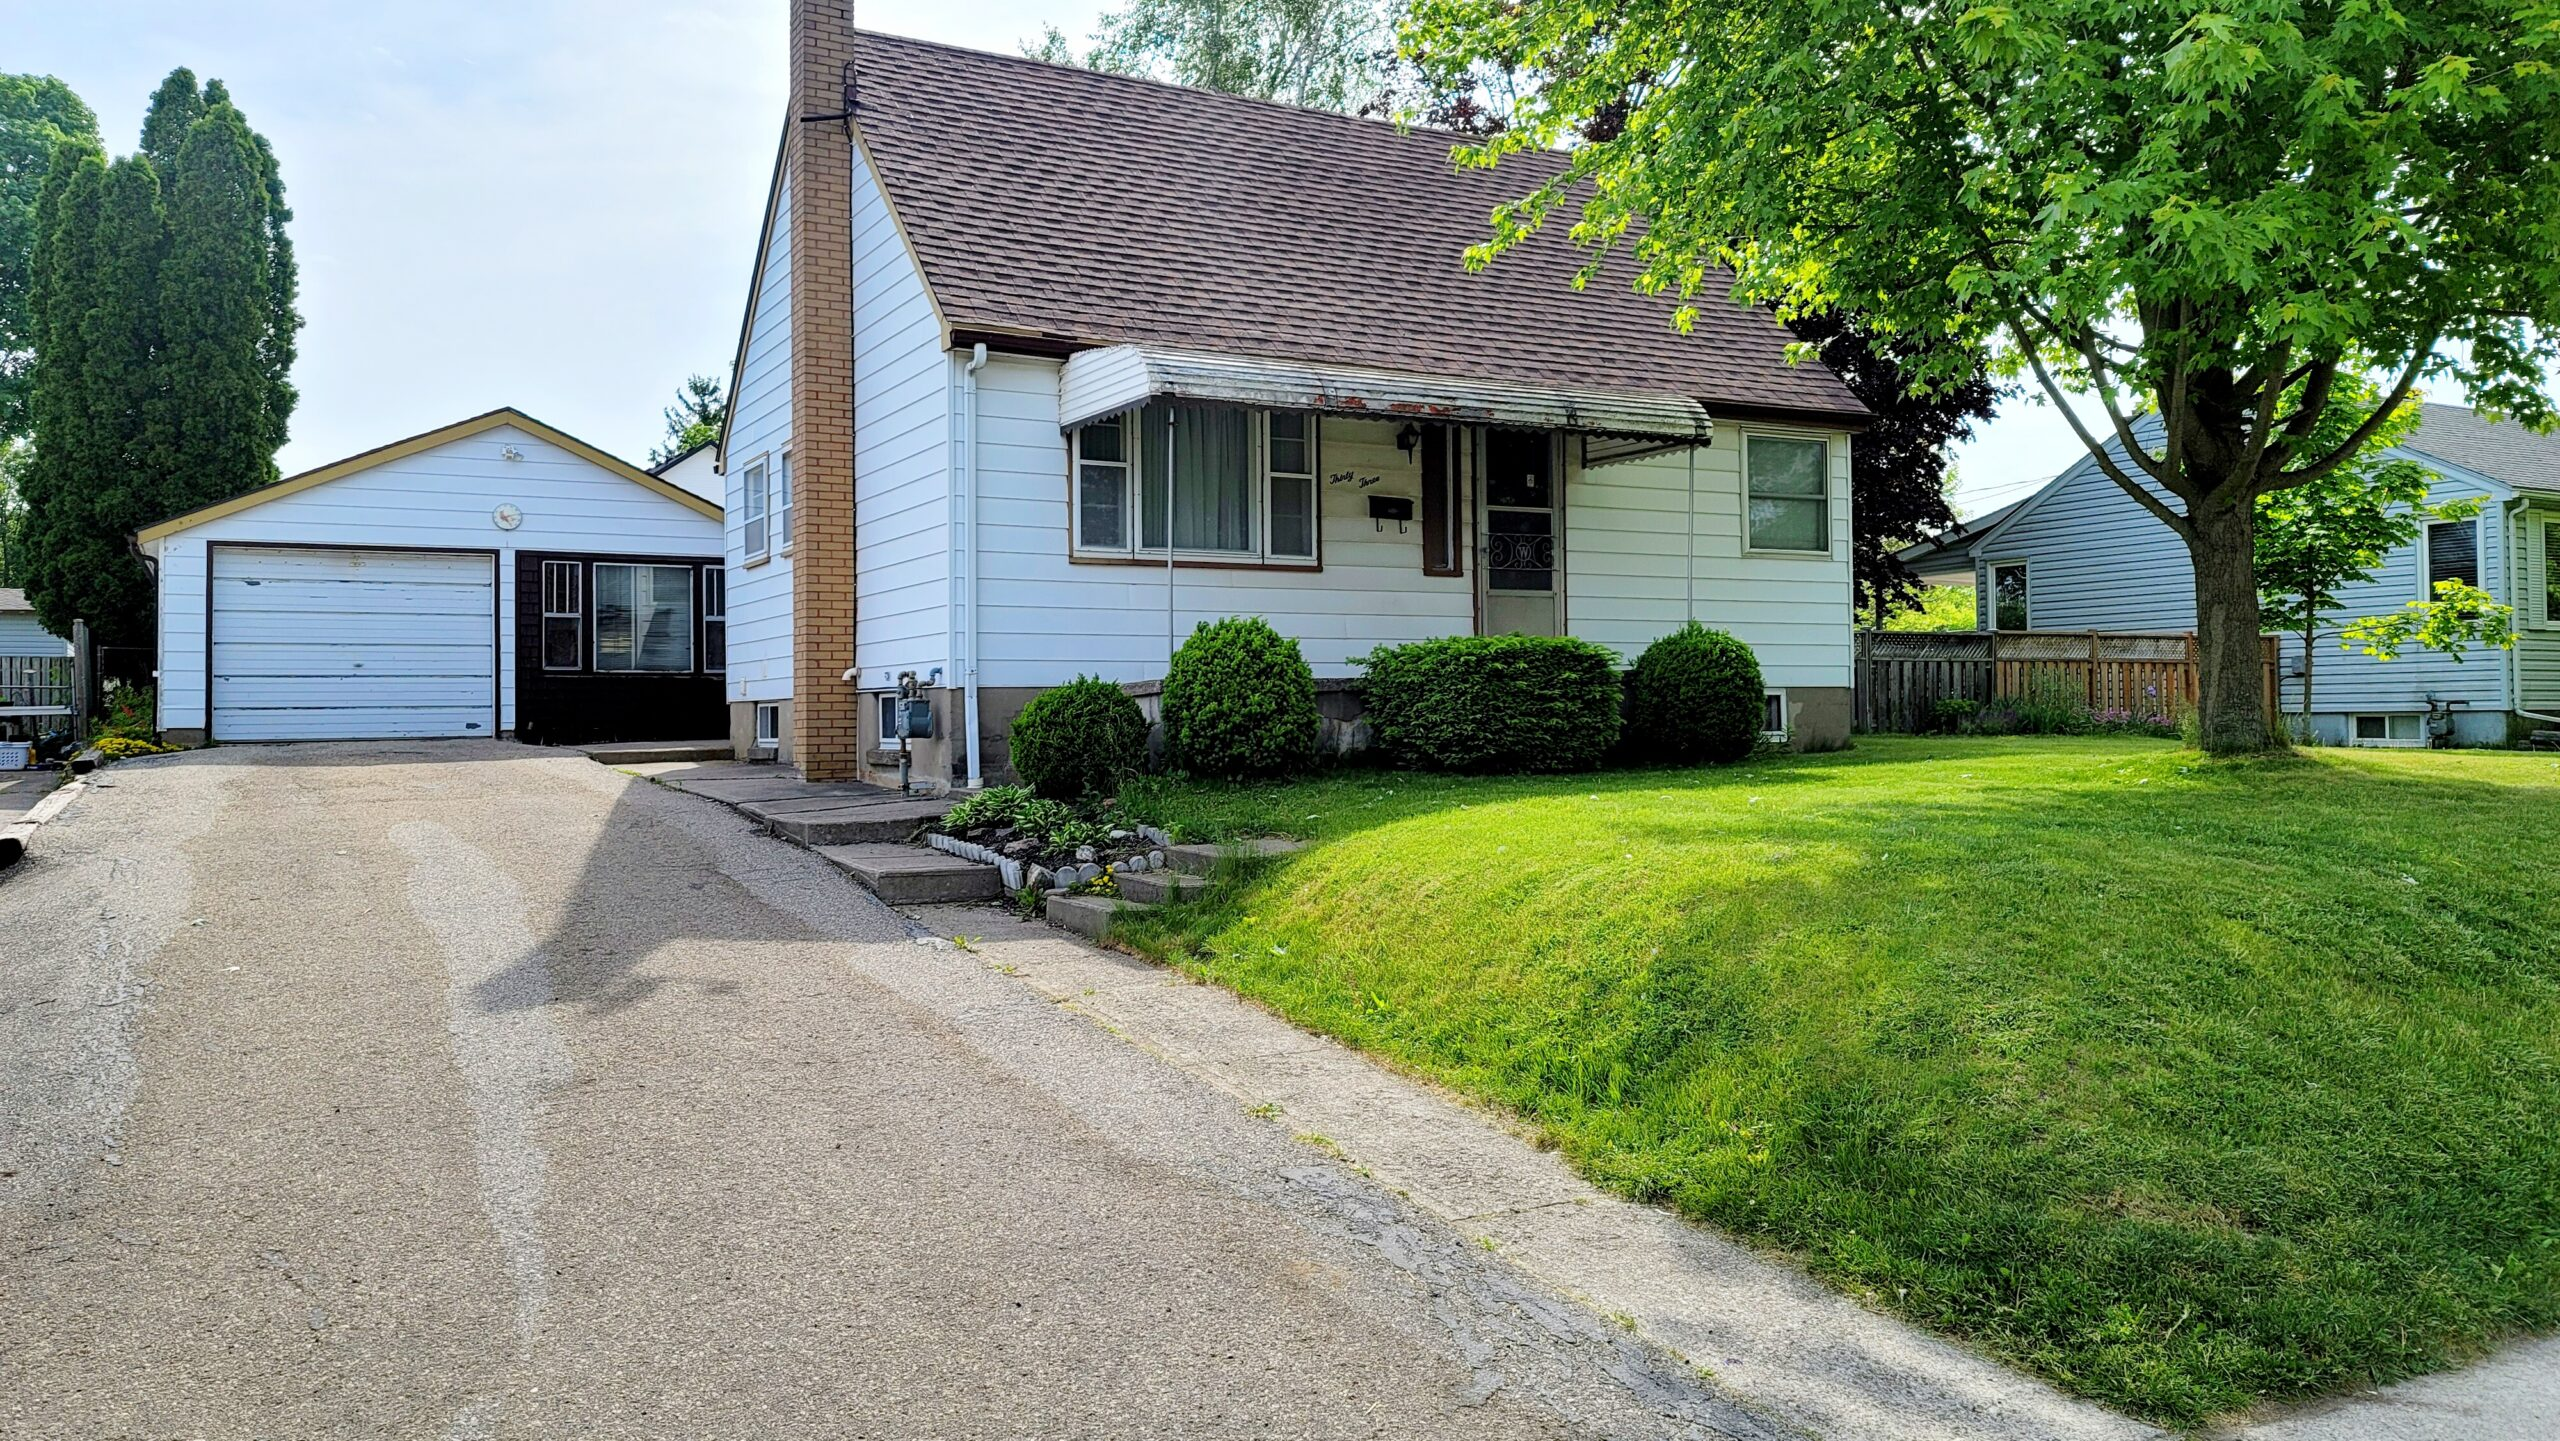 33 Maud St Woodstock Ontario N4S 3Y3 House For Sale $339,900